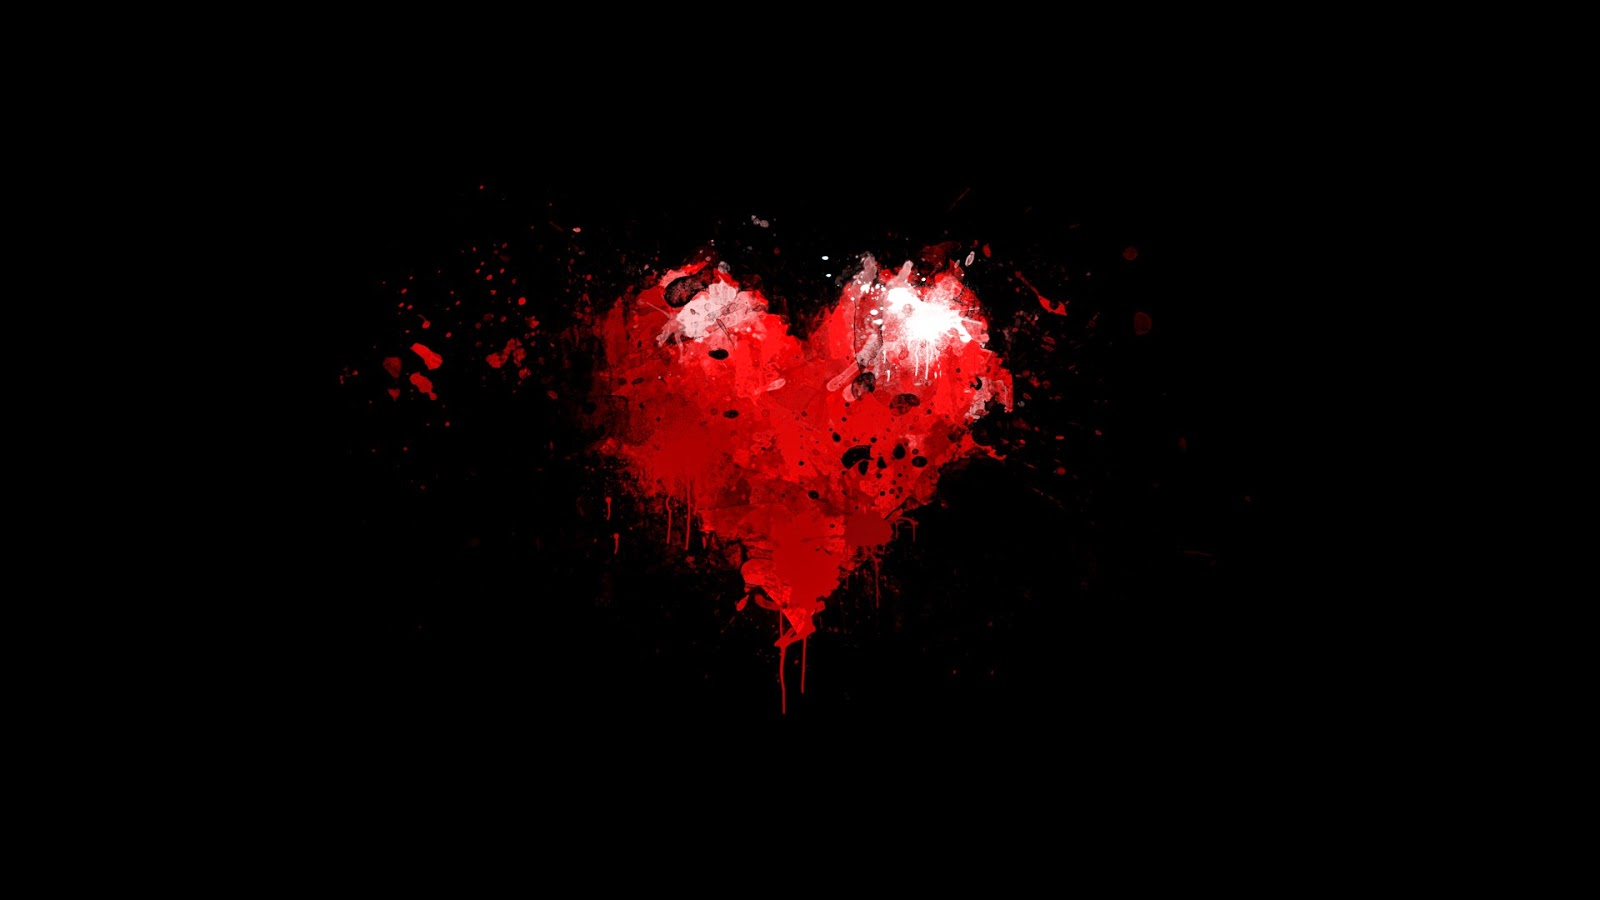 Love Wallpaper With Blood : Romantic Love Heart Designs HD cover Wallpaper PIXHOME